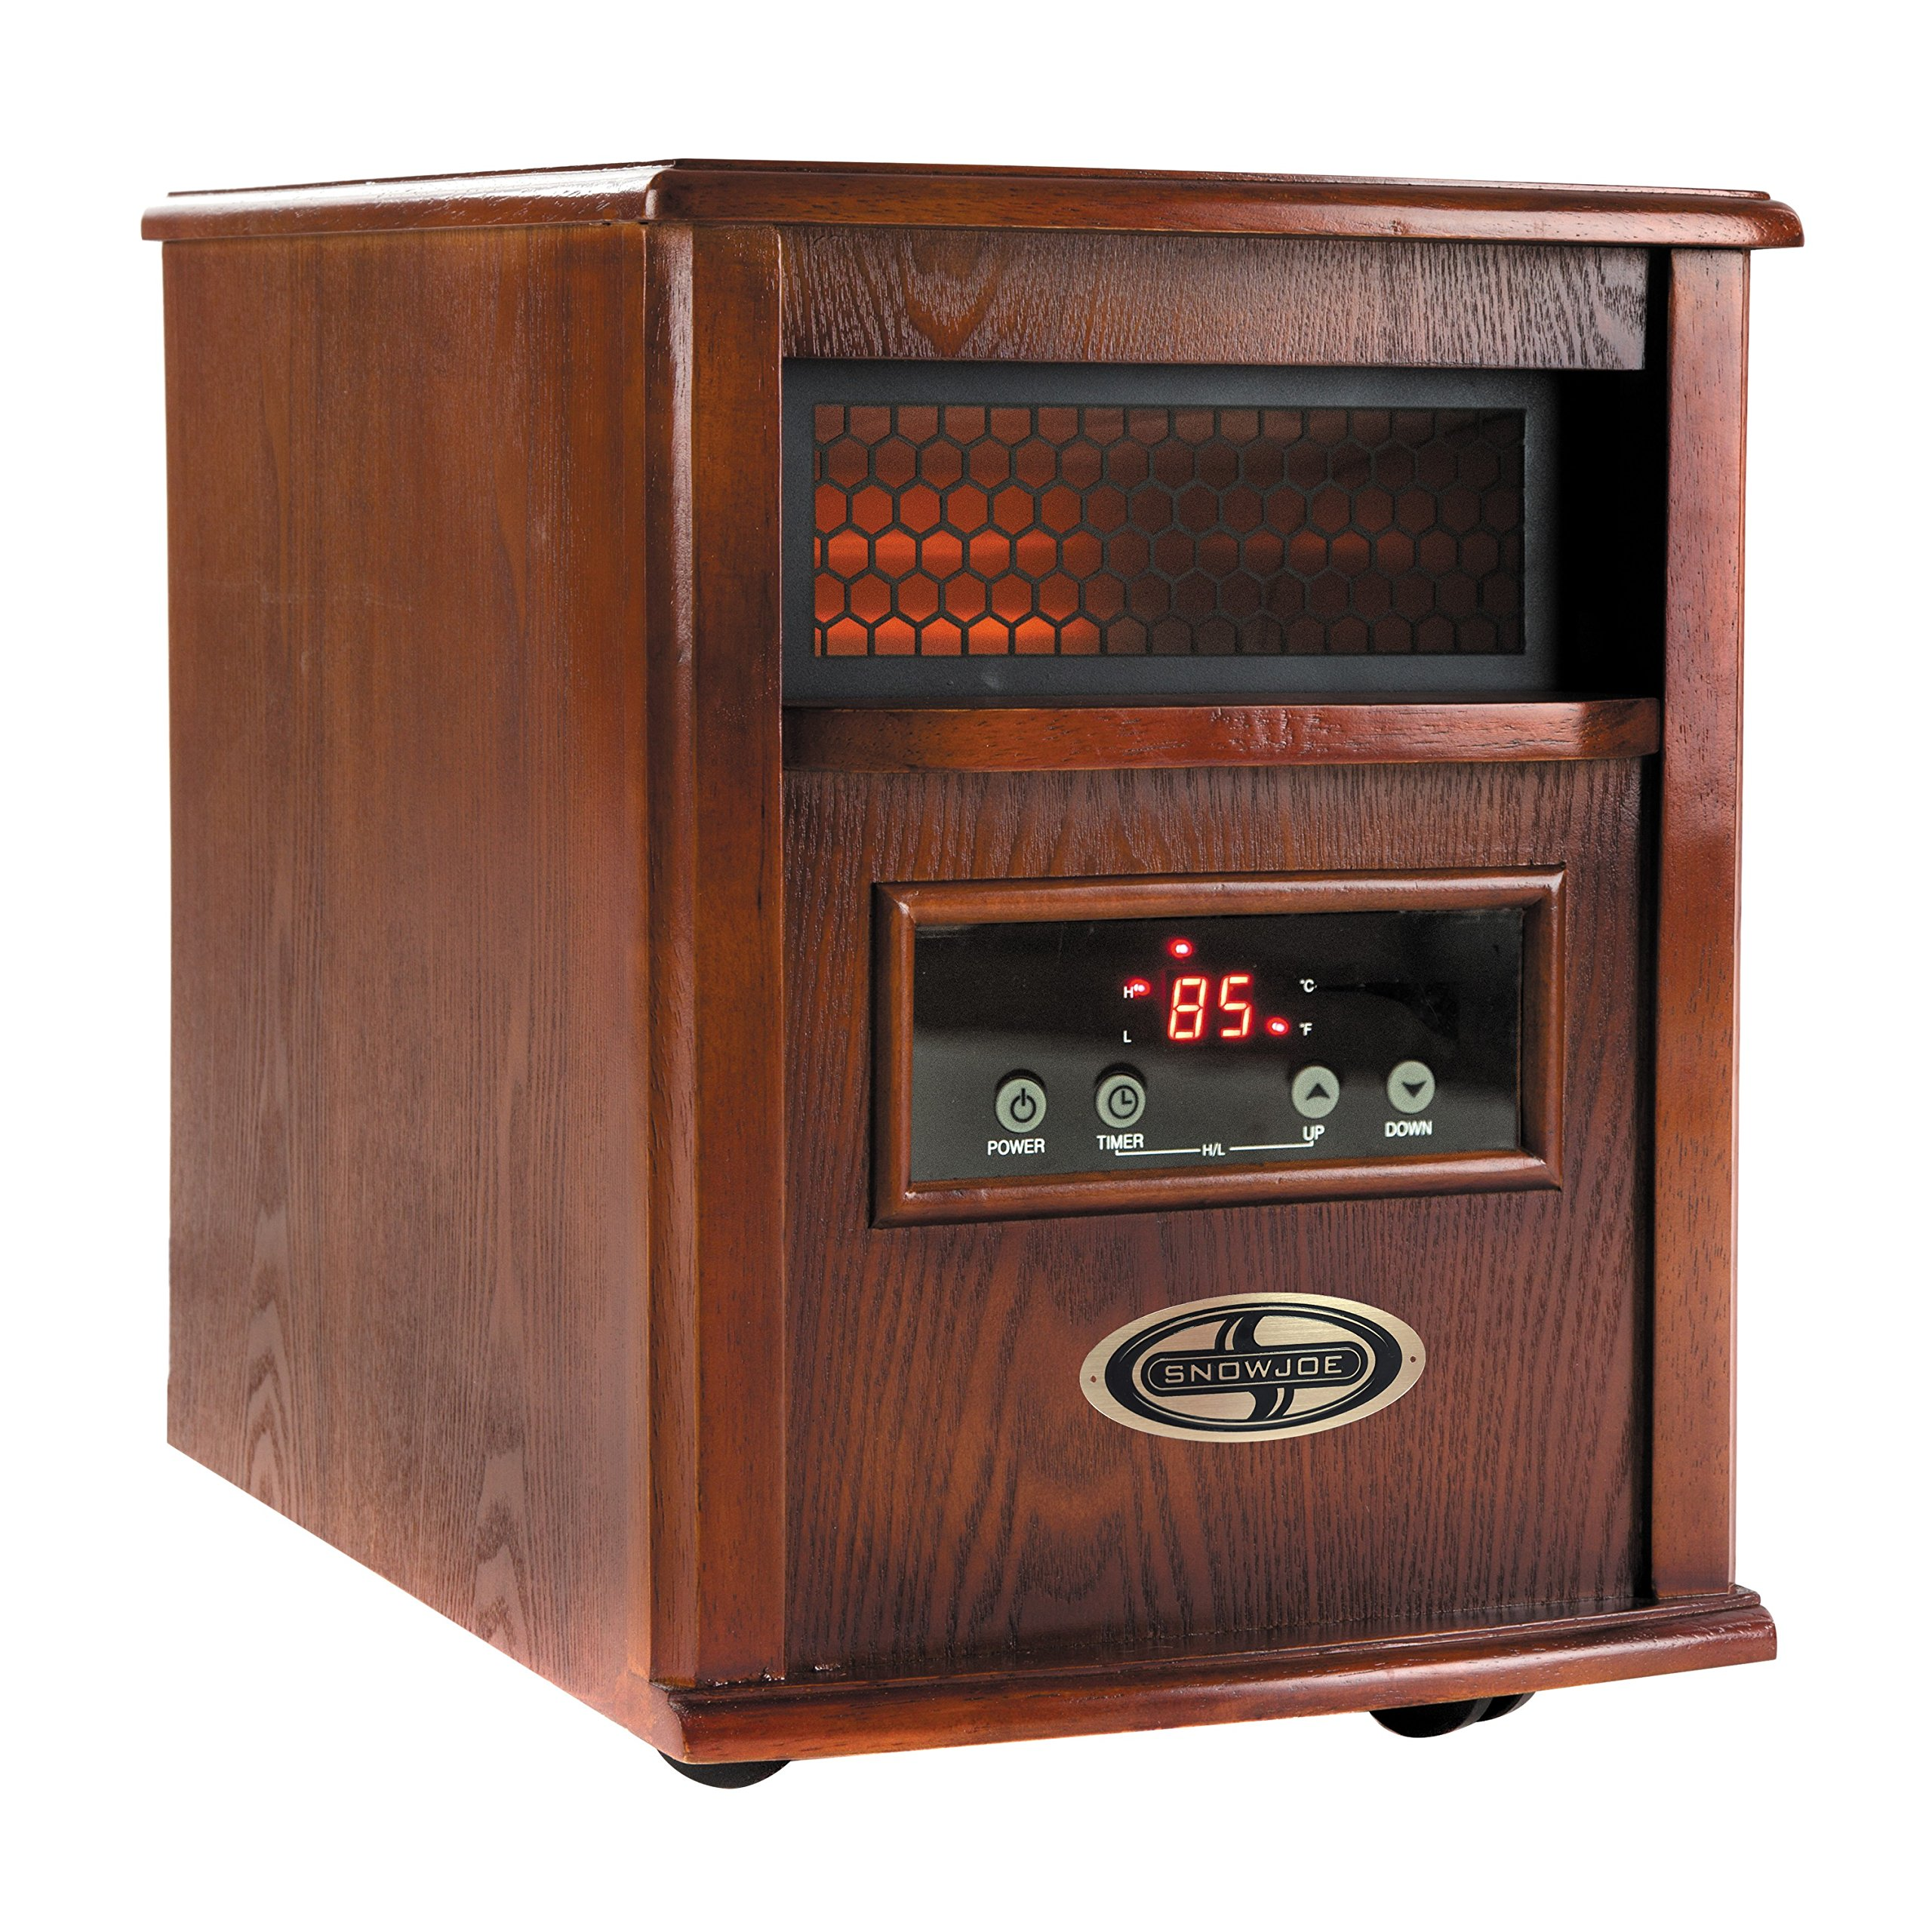 Snow Joe SJQH1500-DO 1500-Watt Quartz Portable Infrared Space Heater with Stainless Steel Diffuser & Remote Control